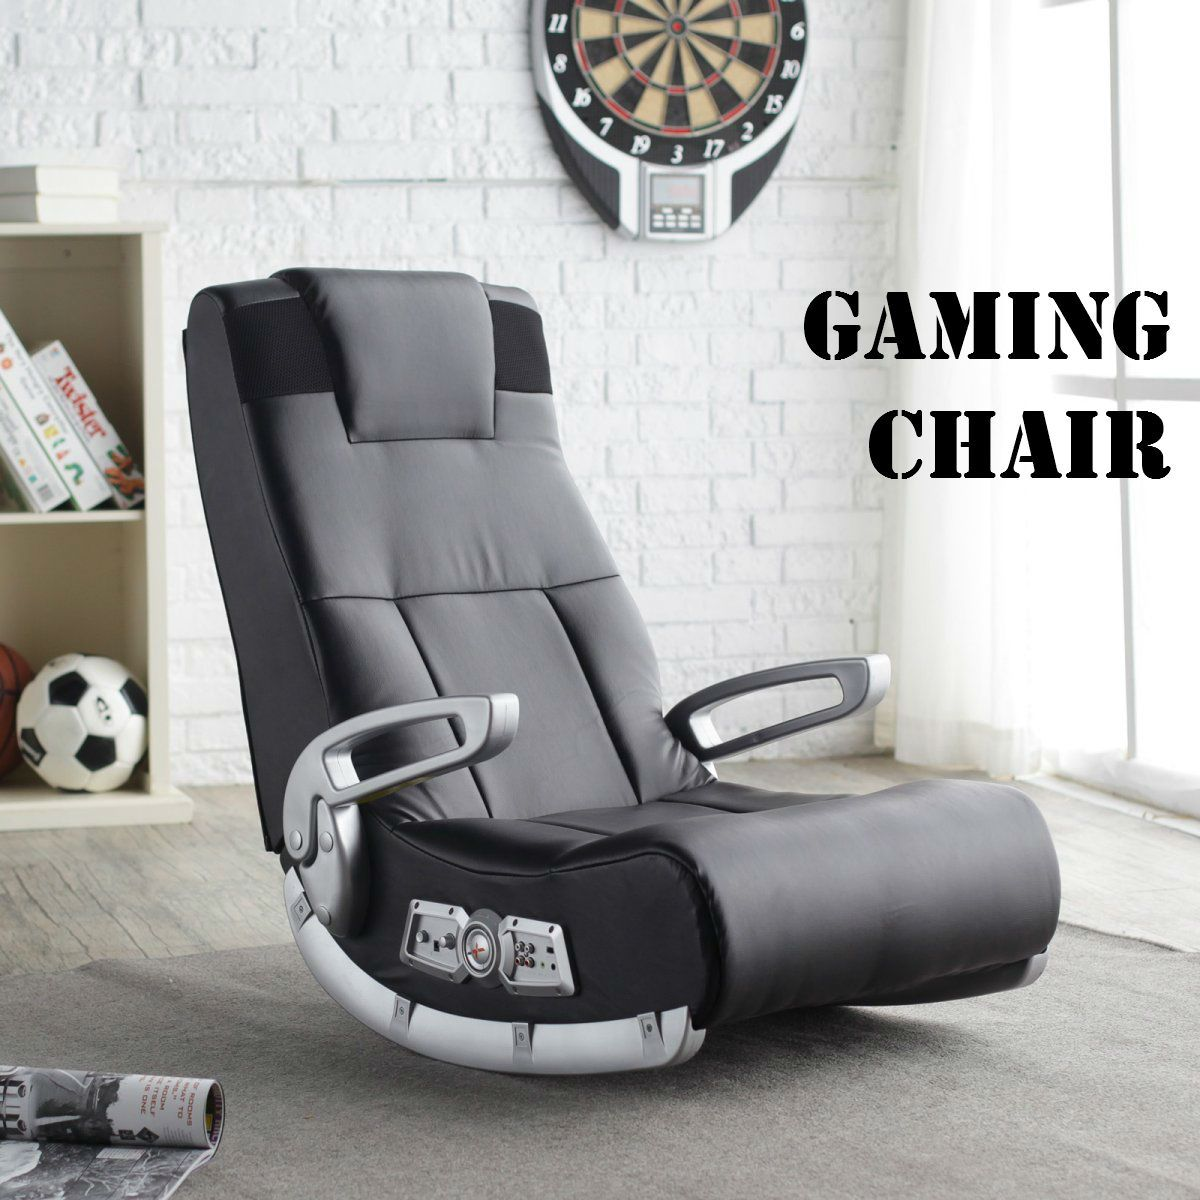 Up To 40 Off Dream Rocker Gaming Chair At Boys Stuff Computer Telephone Line Wiring Group Picture Image By Tag Keywordpictures